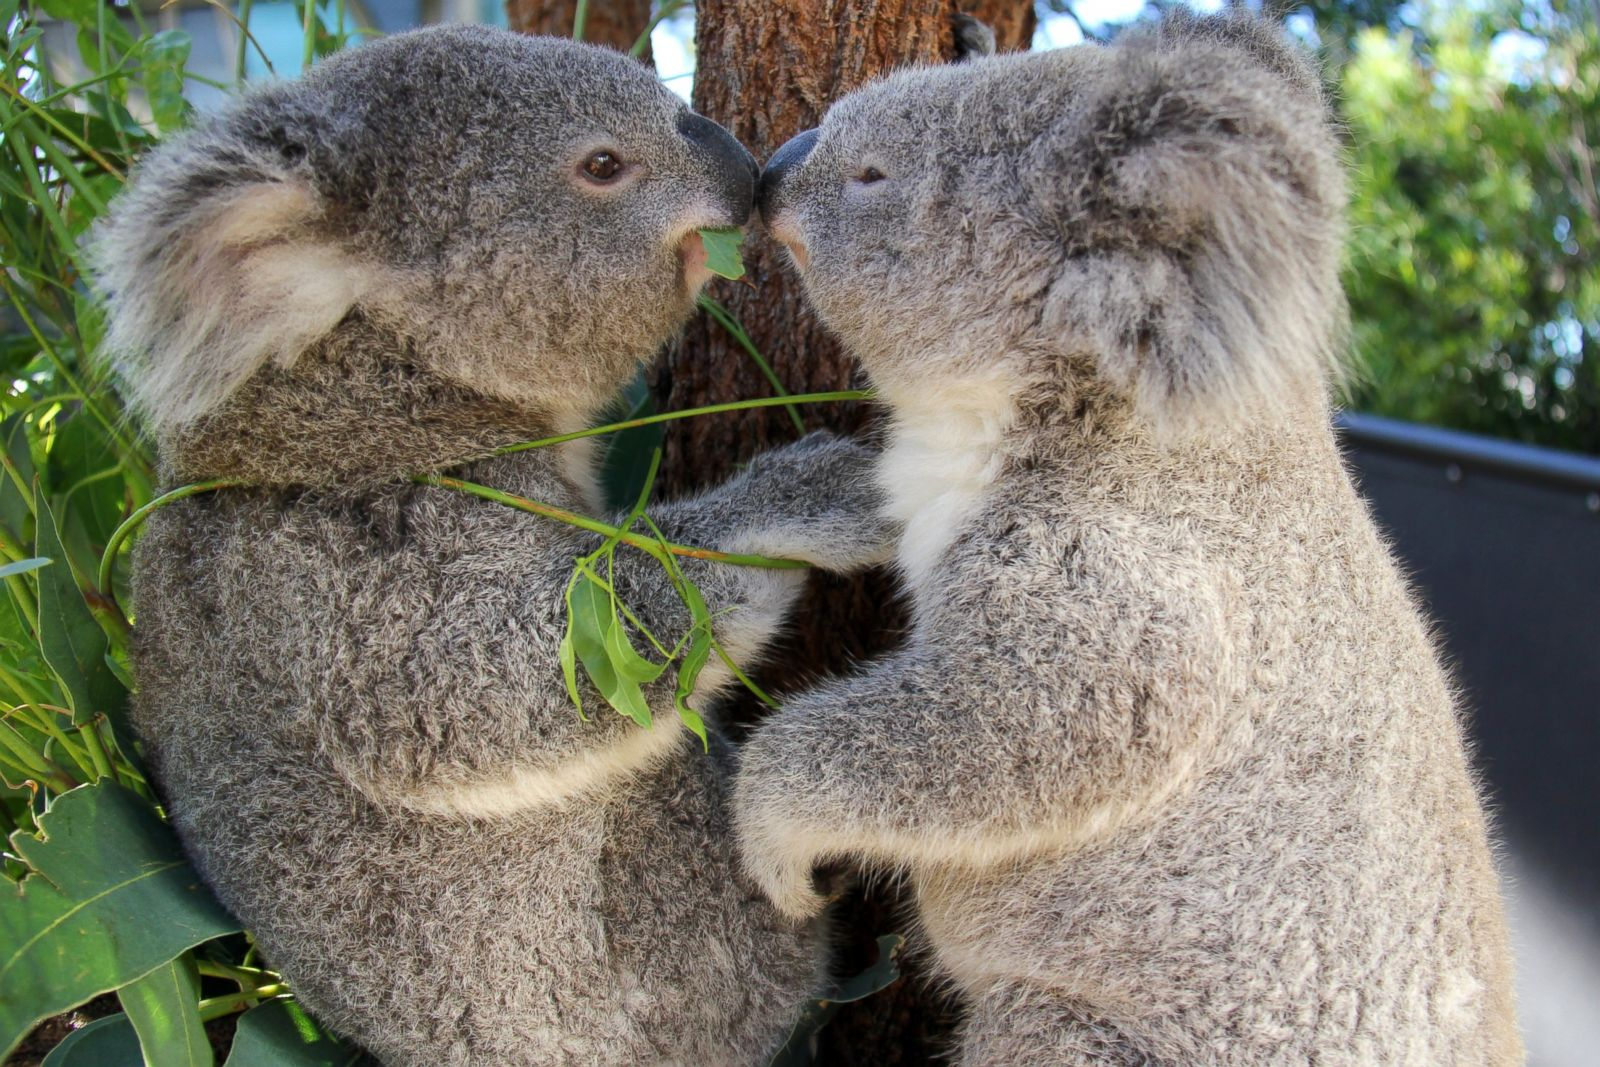 two cuddly koalas get cozy picture amazing animals from around the world abc news. Black Bedroom Furniture Sets. Home Design Ideas